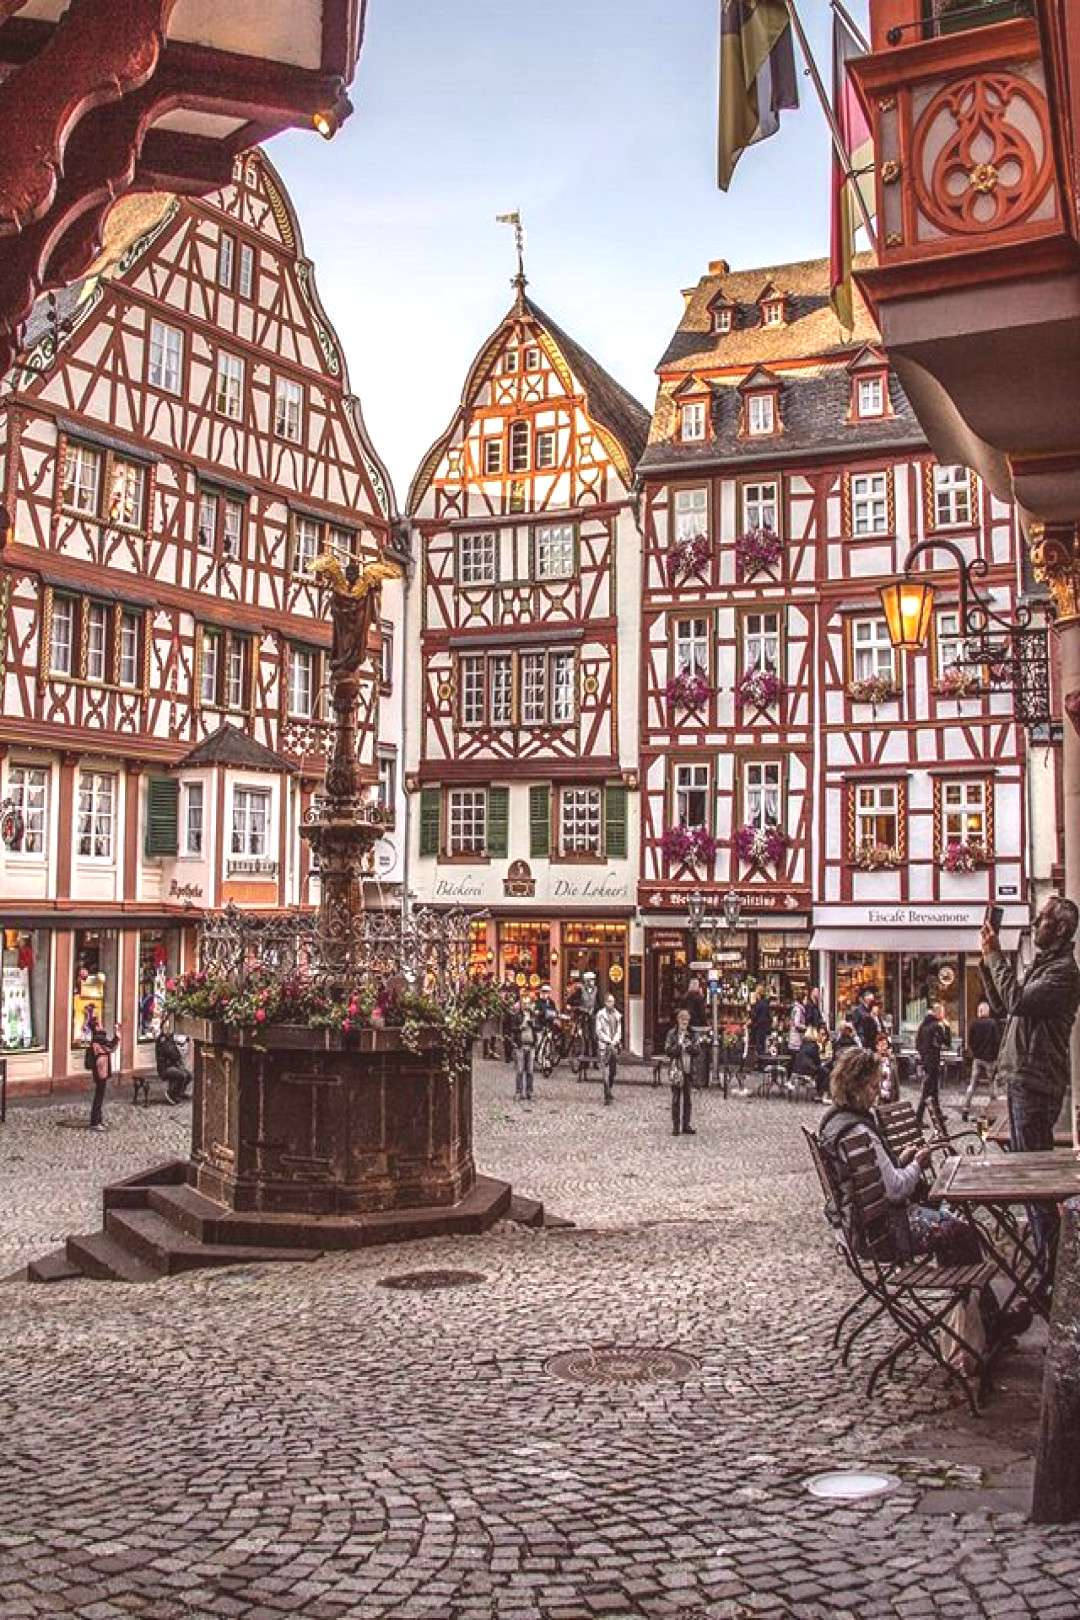 8 Beautiful Fairy Tale Towns In Germany You Have To See!! Little-know hidden towns germany that bel